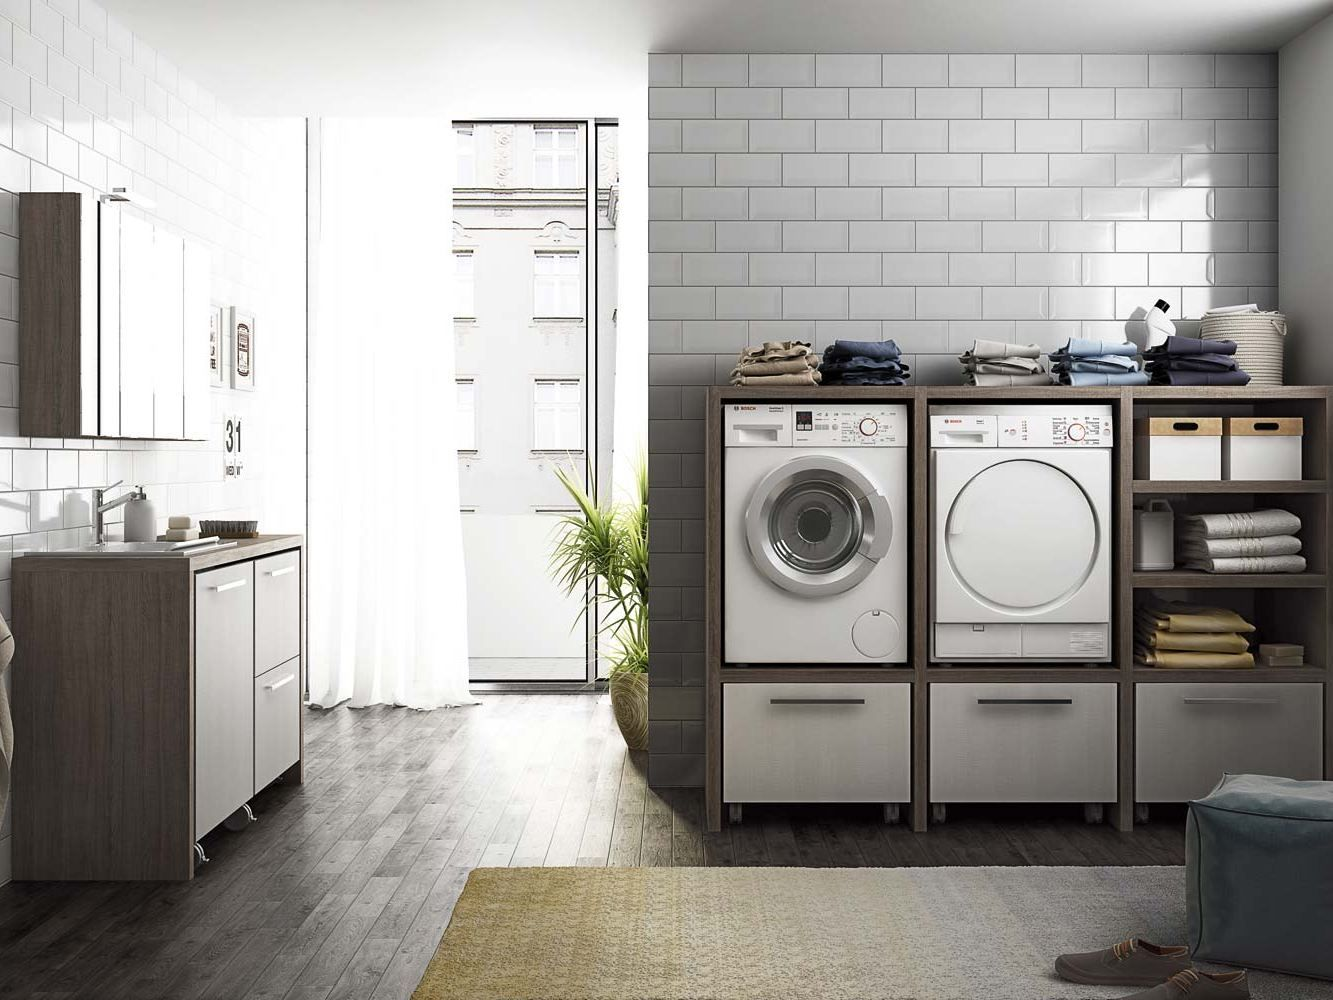 Sectional laundry room cabinet with sink LAUNDRY 10 - LEGNOBAGNO